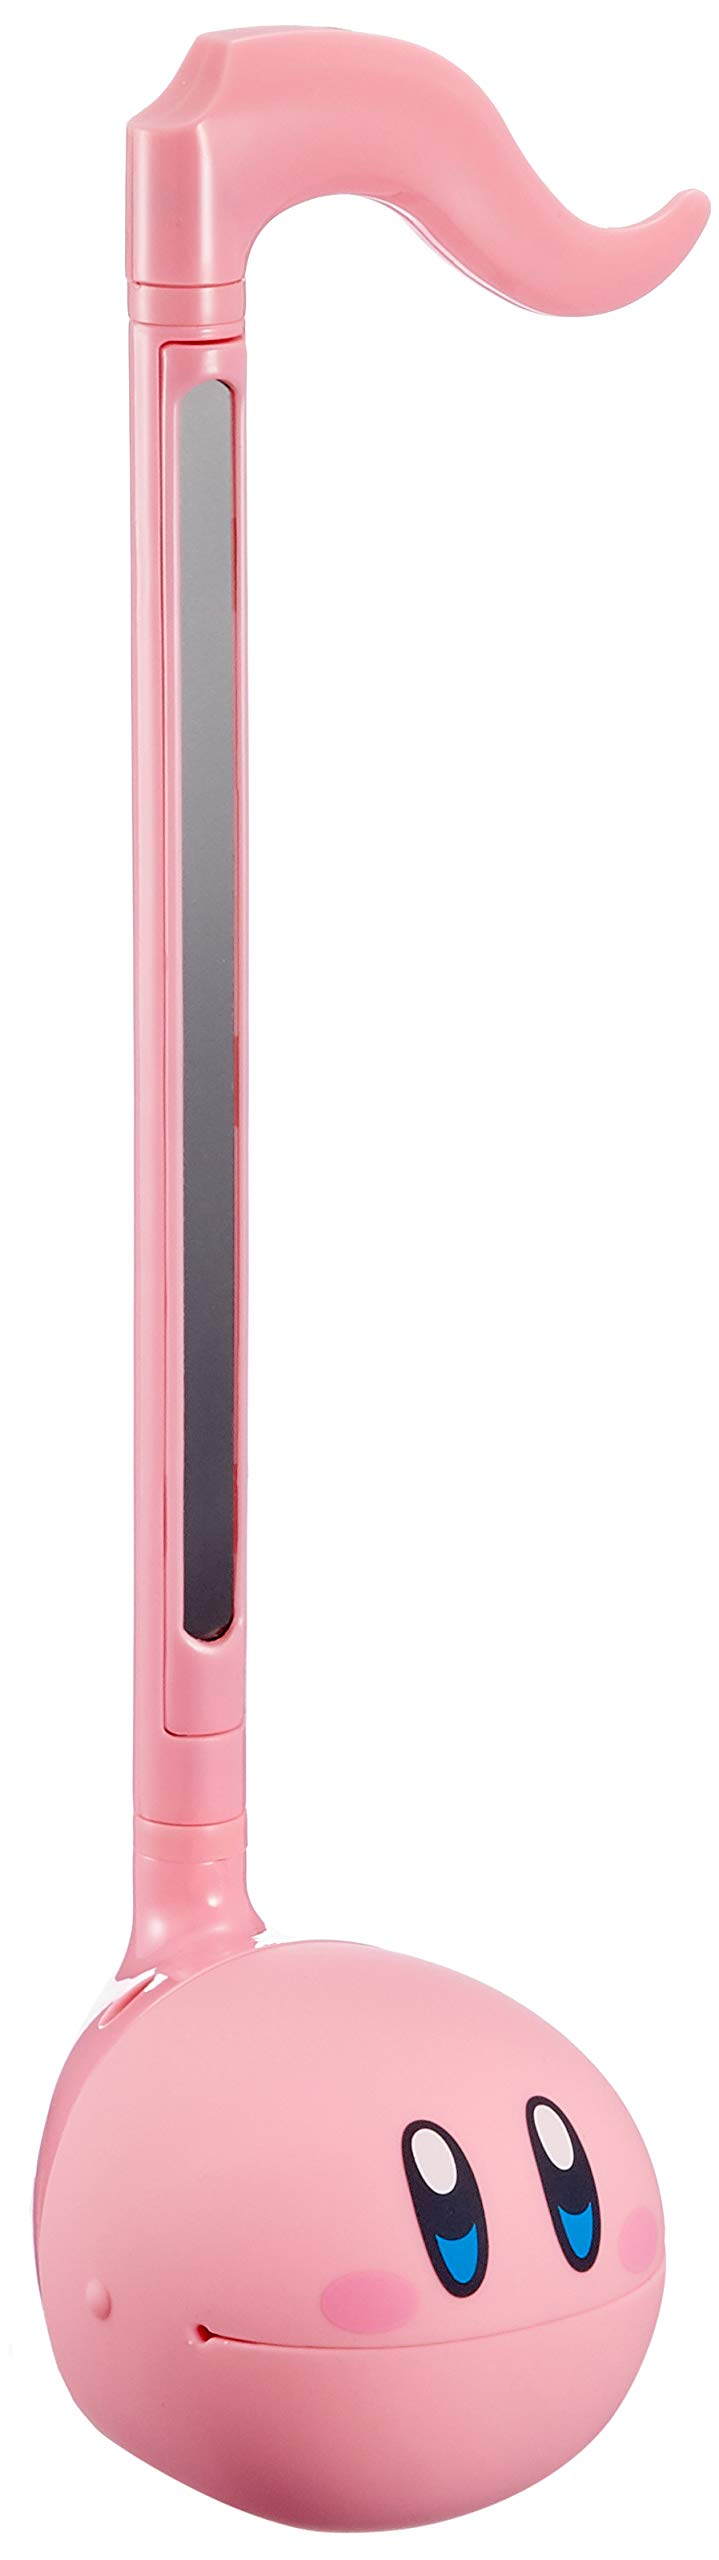 Otamatone [Kirby] Nintendo Video Game Character Japanese Electronic Musical Instrument Portable Synthesizer from Japan by Cube/Maywa Denki, Pink Hero (Japan Import)